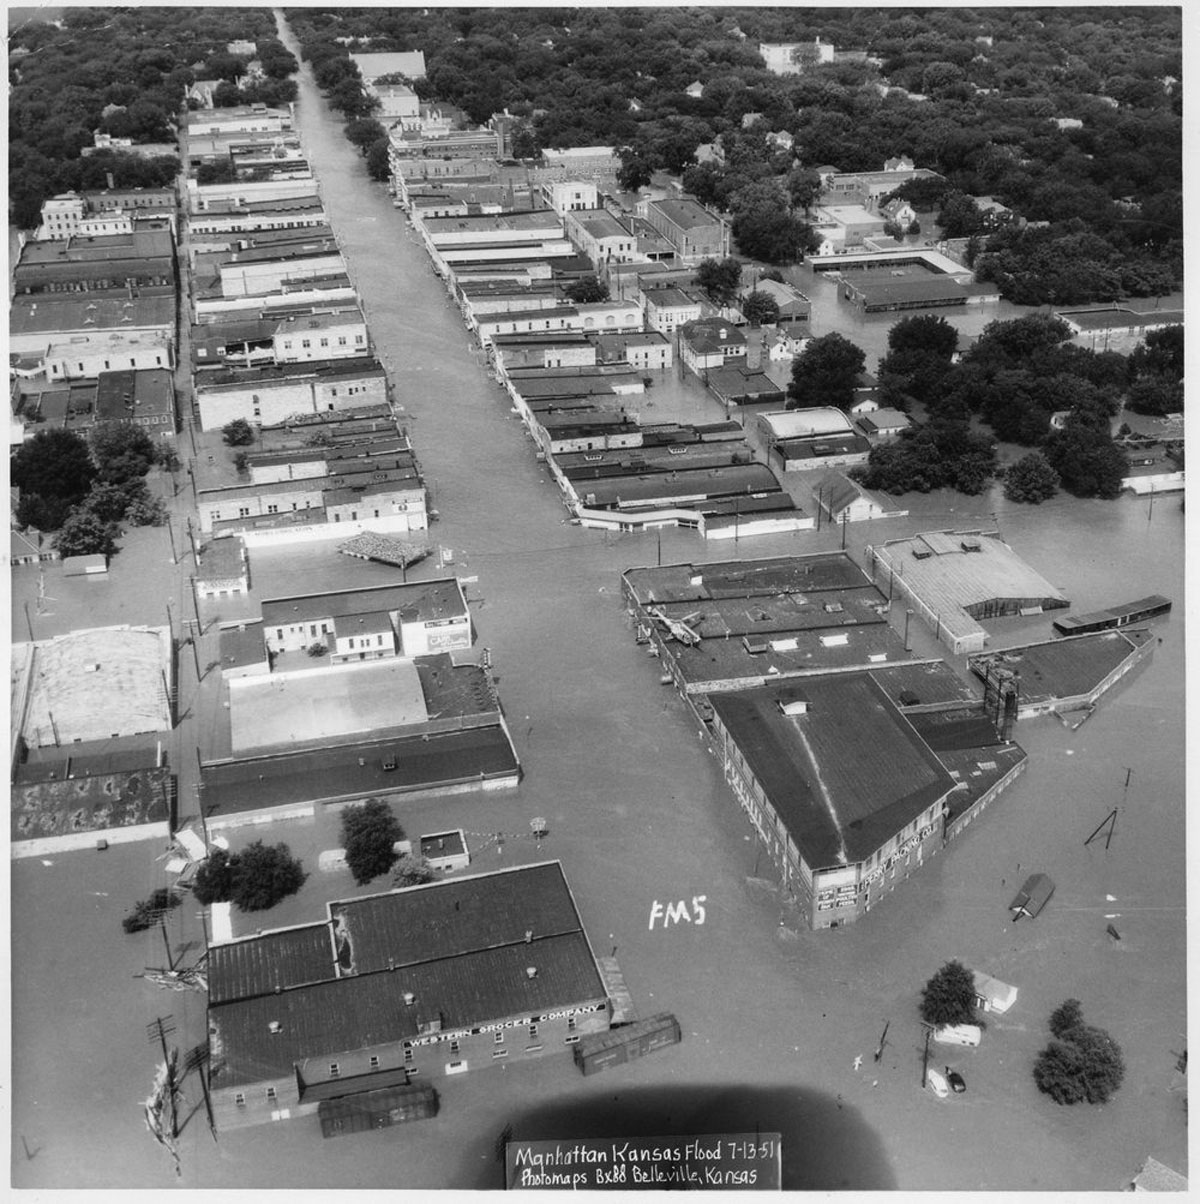 An aerial view showing flooding along Poyntz Avenue in downtown Manhattan, Kansas. Date: July 13, 1951 (Photo Courtesy of Kansas Historical Society / kansasmemory.org)